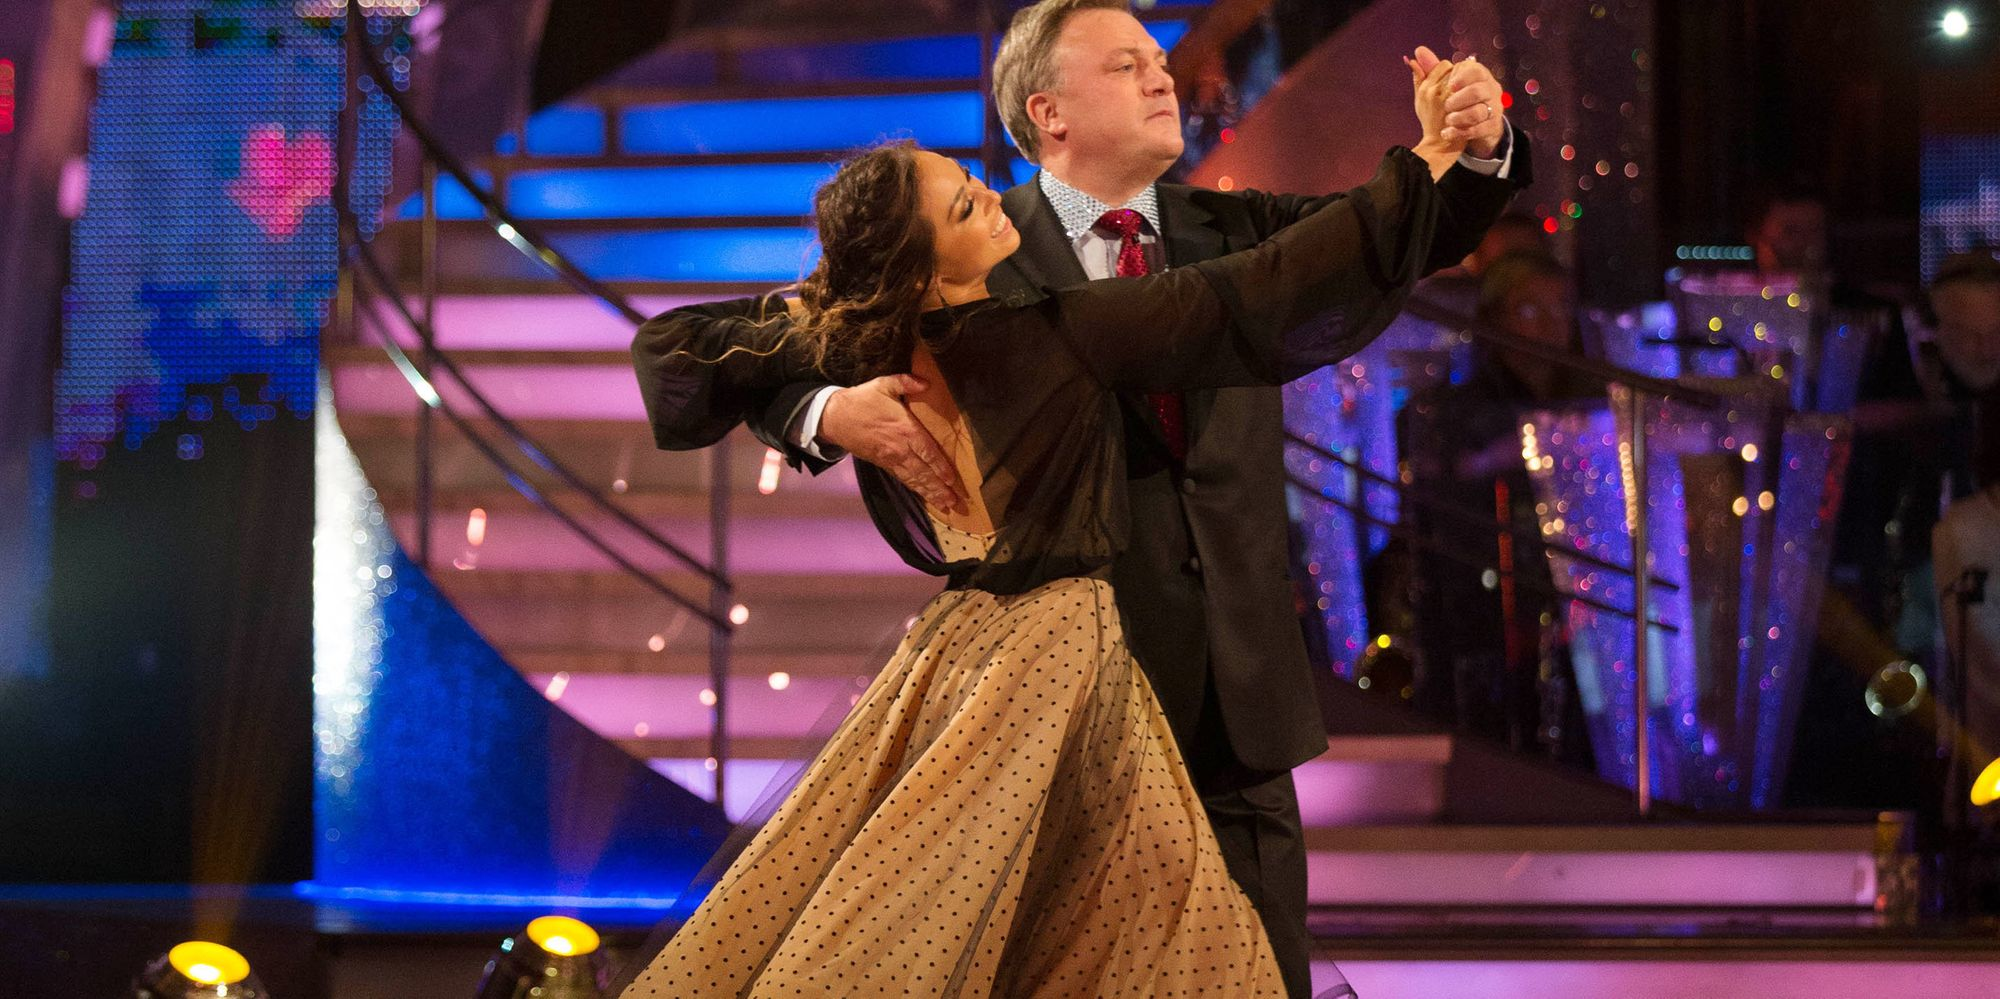 Ed Balls' 'Strictly Come Dancing' Debut Gets A Mixed Reaction From The Judges